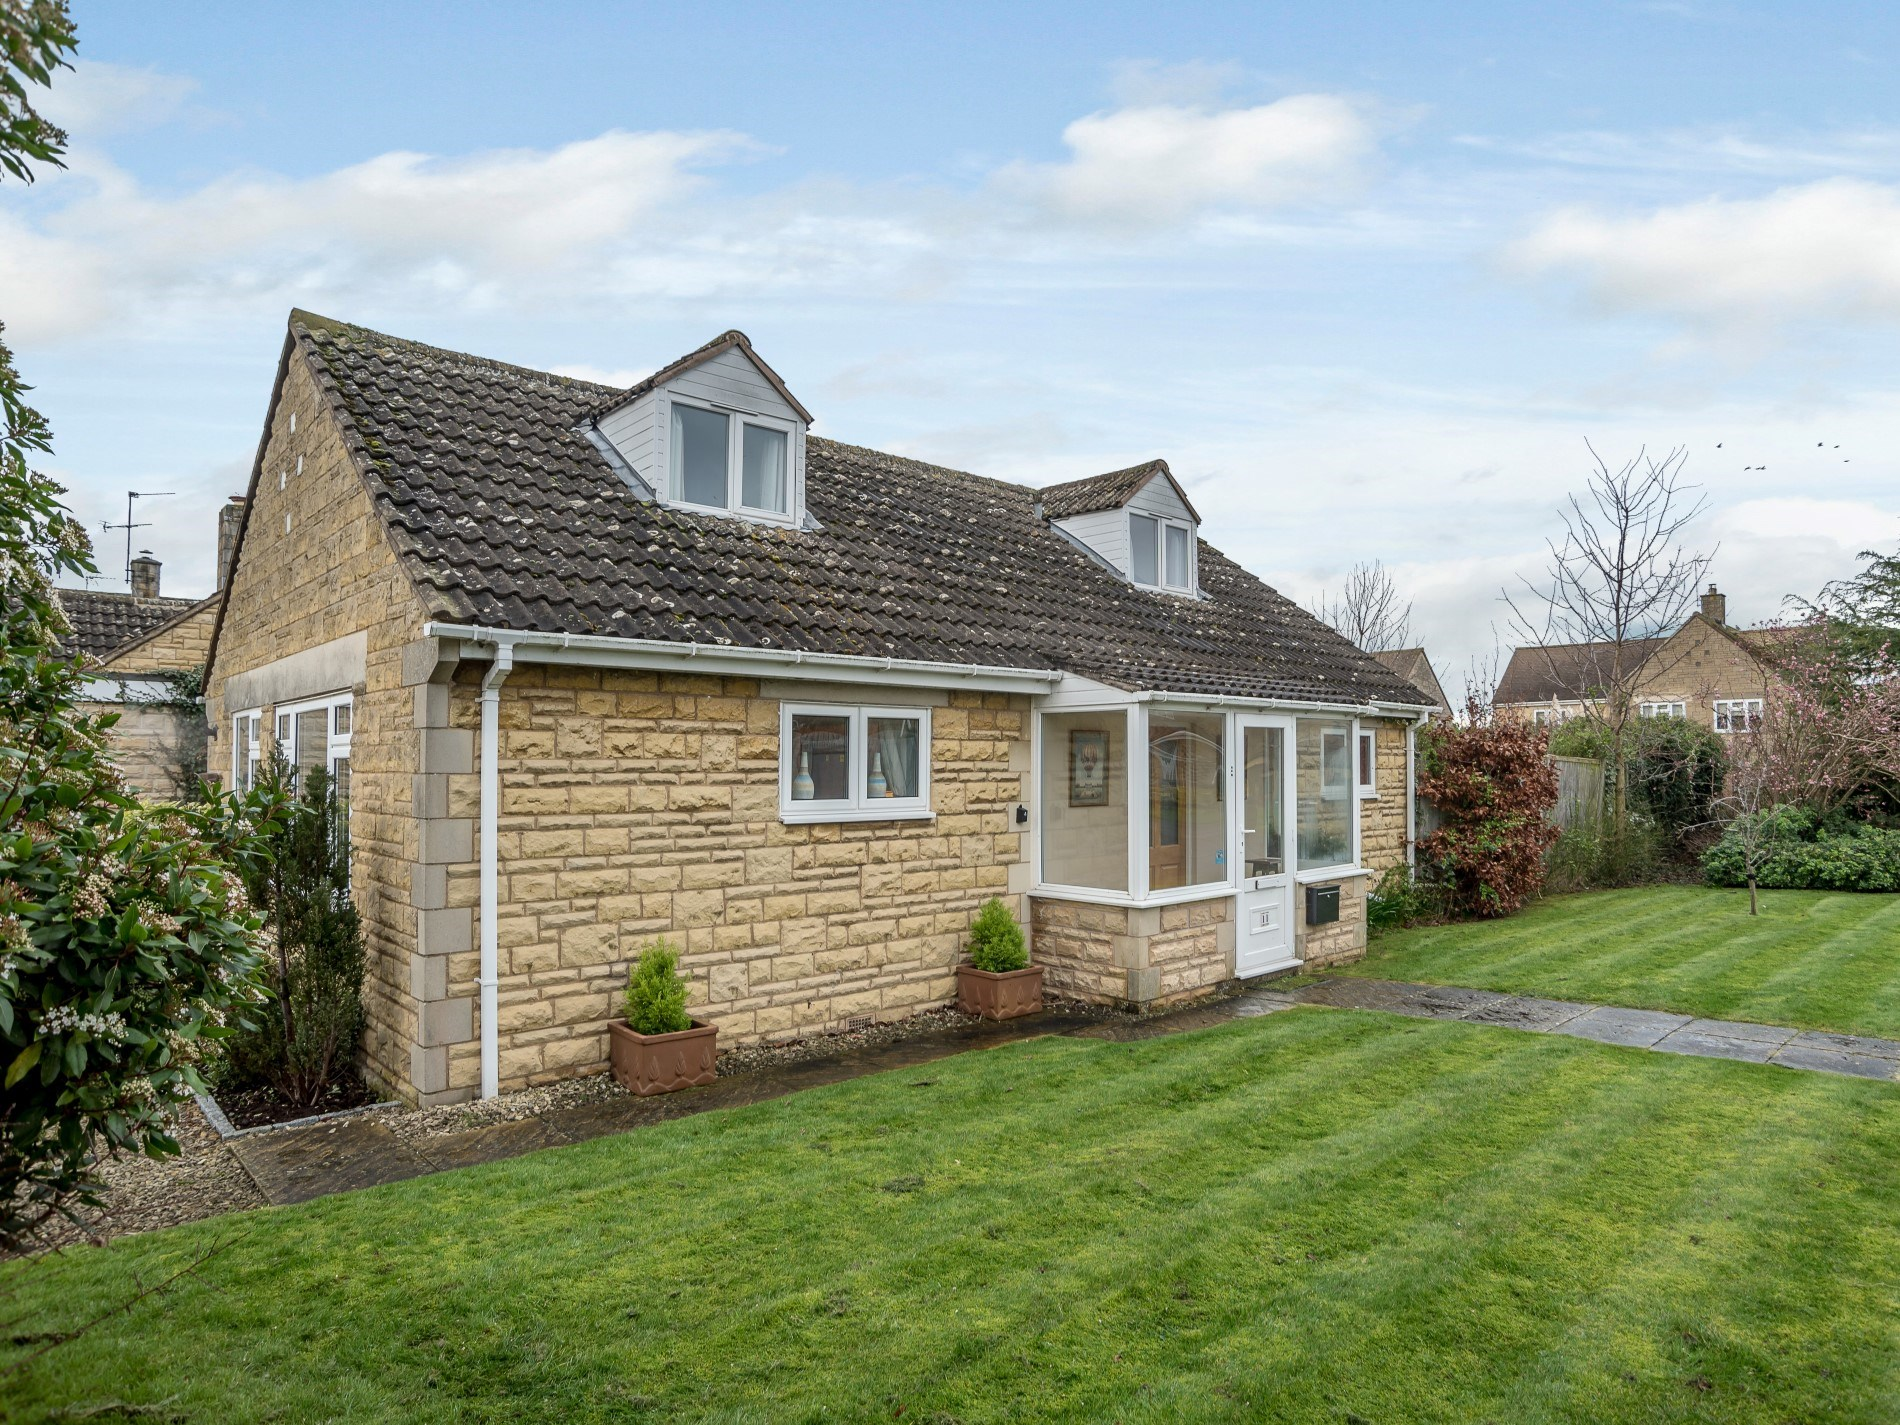 3 Bedroom Cottage in Chipping Campden, Heart of England